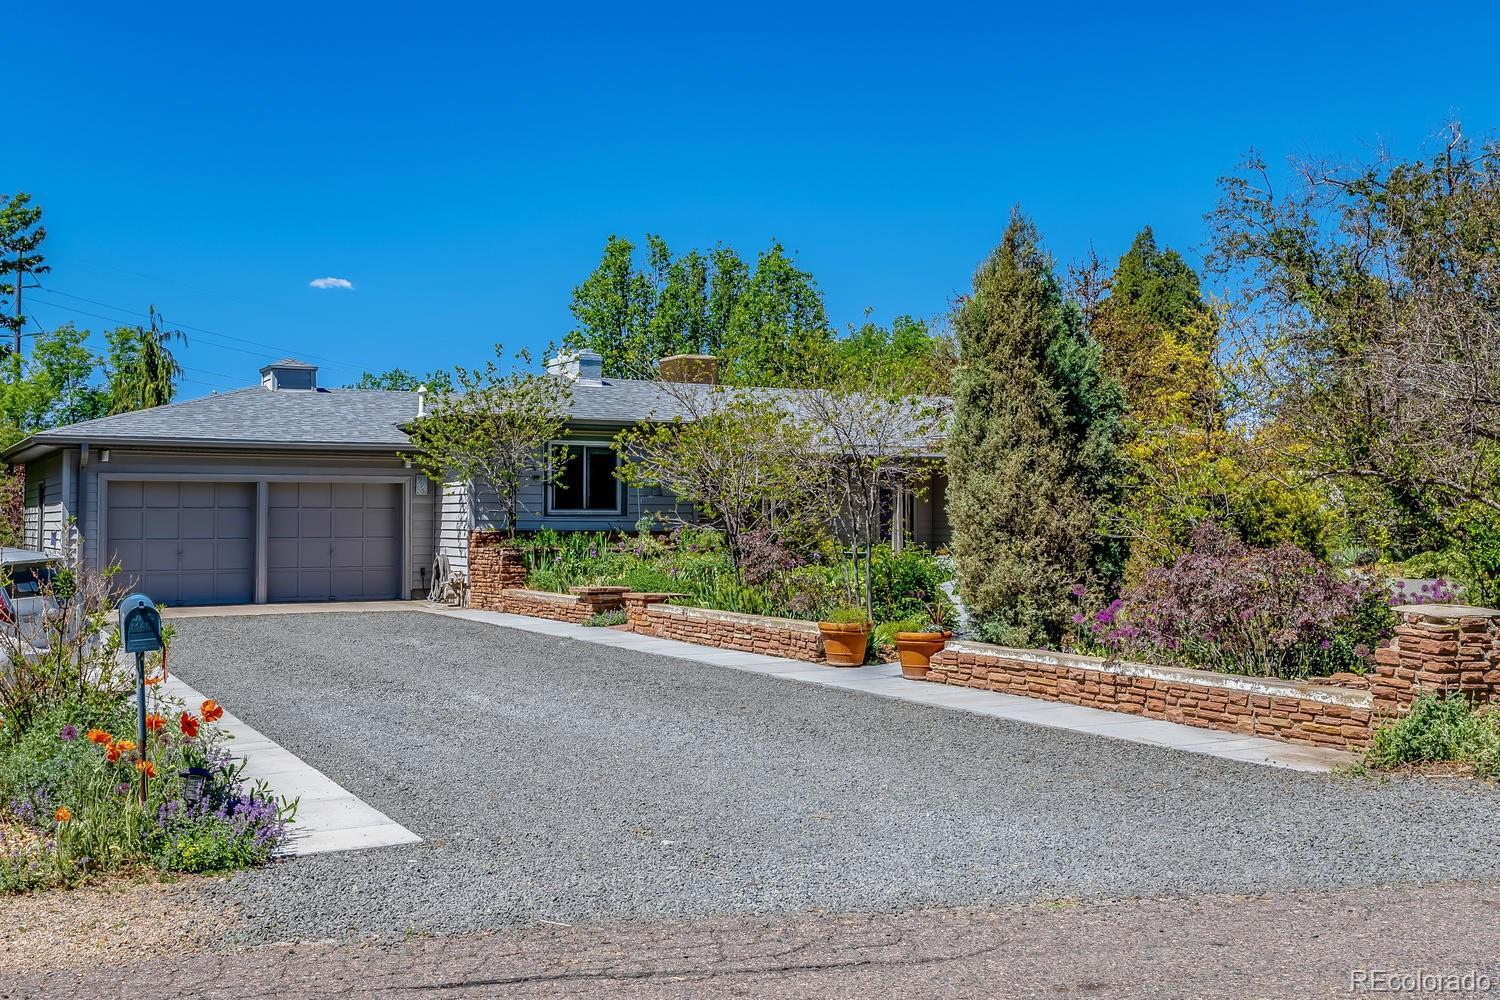 995 Lombardy Lane, Lakewood, CO 80215 - #: 6357114